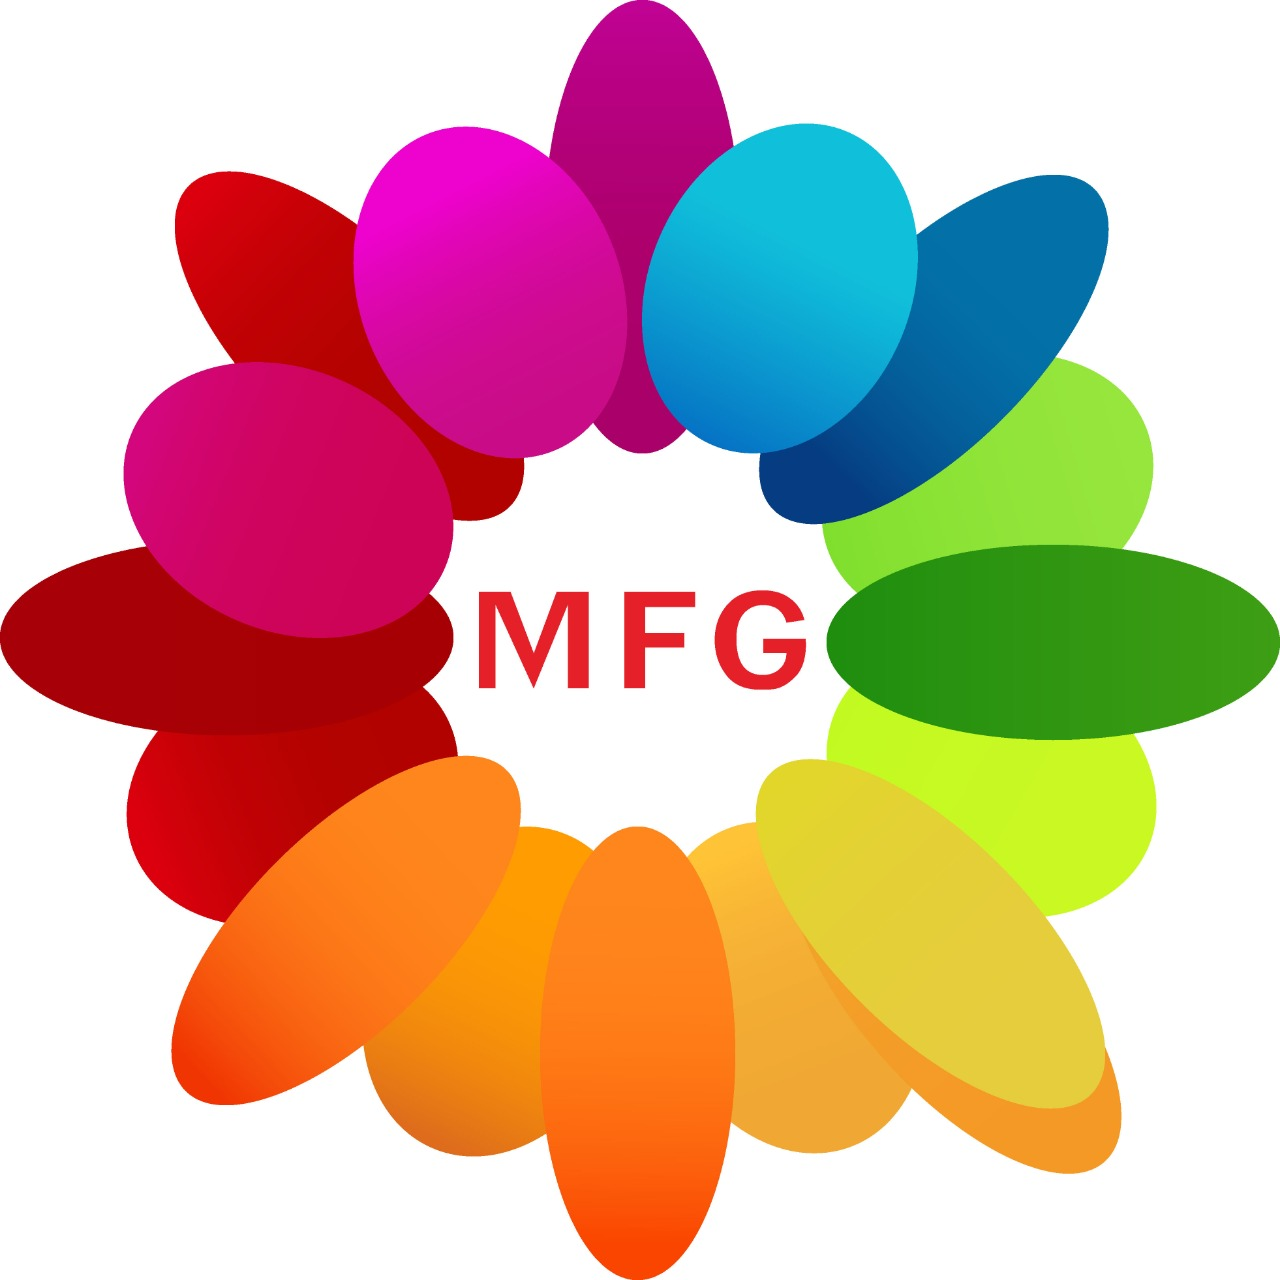 Basket of kitkat chocolates, valentine day greeting card, with heart shape arrangement of 20 red roses with teddybear sitting in it